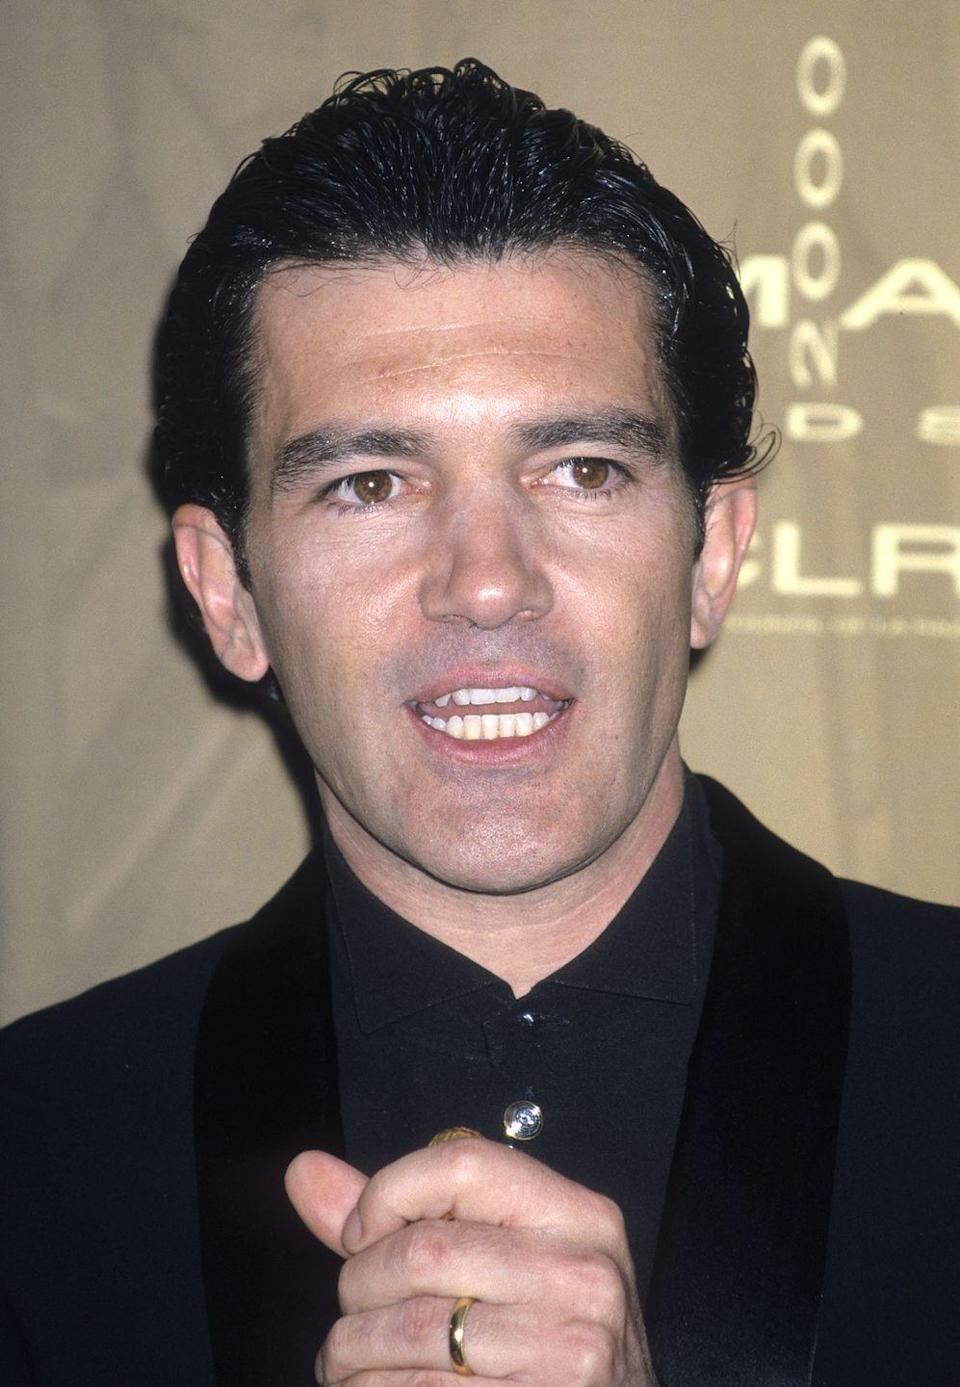 <p>Born in Málaga, Spain, the international star rose to prominence playing the title role in 1998's <em>The Mask of Zorro</em>. The early 2000s saw Banderas lend his voice to the animated <em>Shrek</em> series, as well as reprise his star-making role in <em>The Legend of Zorro</em> in 2005.</p>